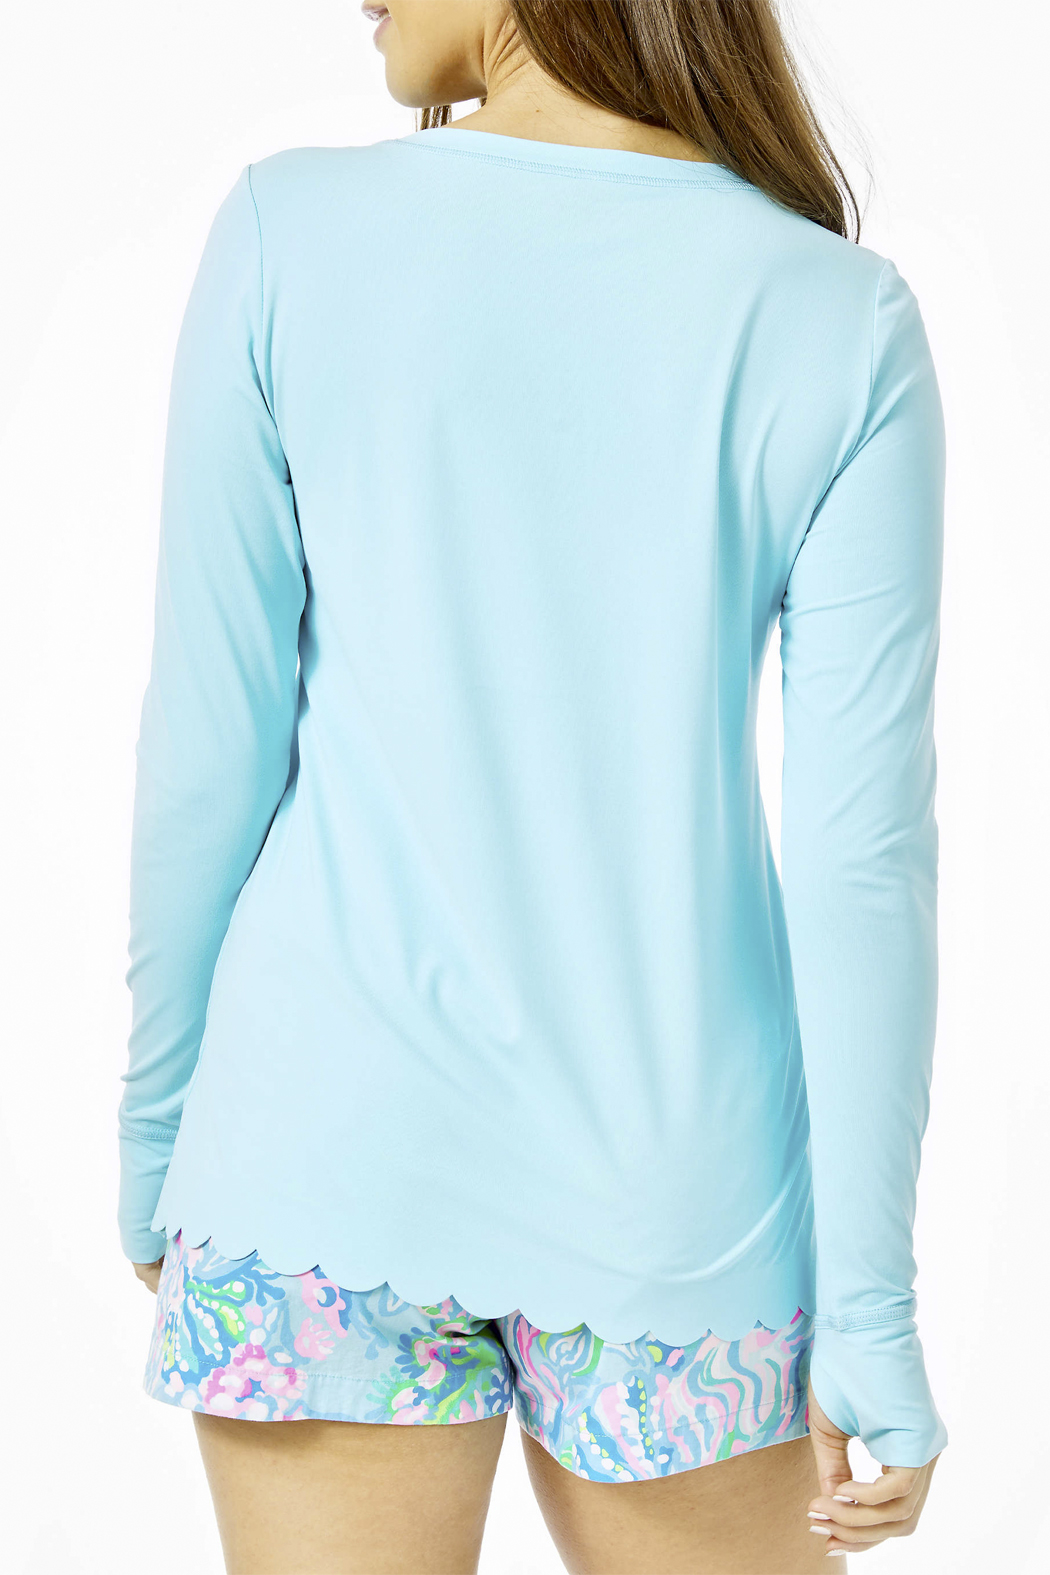 Lilly Pulitzer Renay Scallop Sunguard Luxletic UPF 50+ - Front Full Image